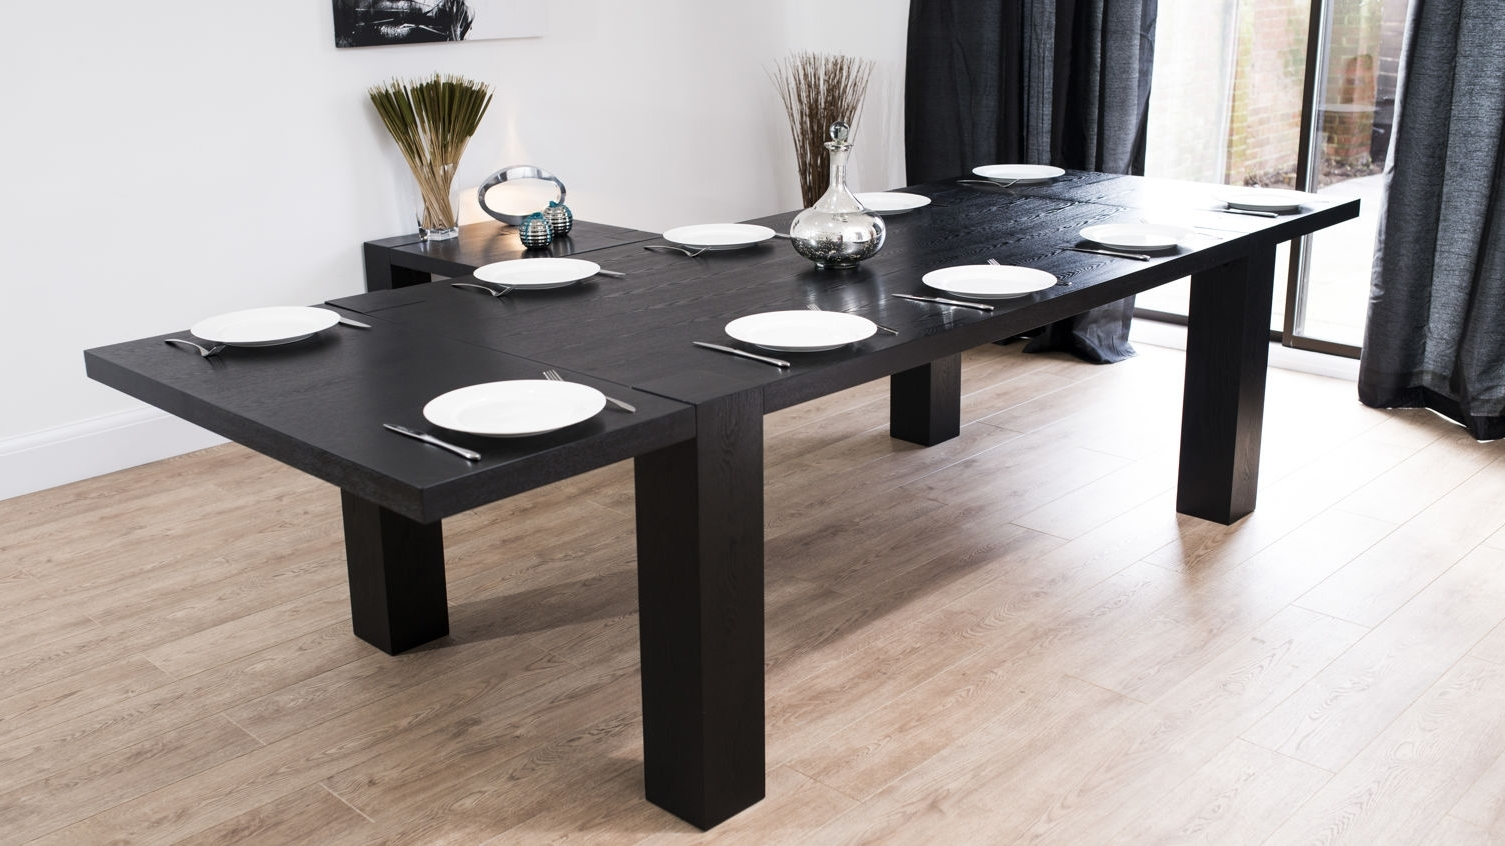 Dining: Extending Black Dining Table for Well-liked Extending Black Dining Tables